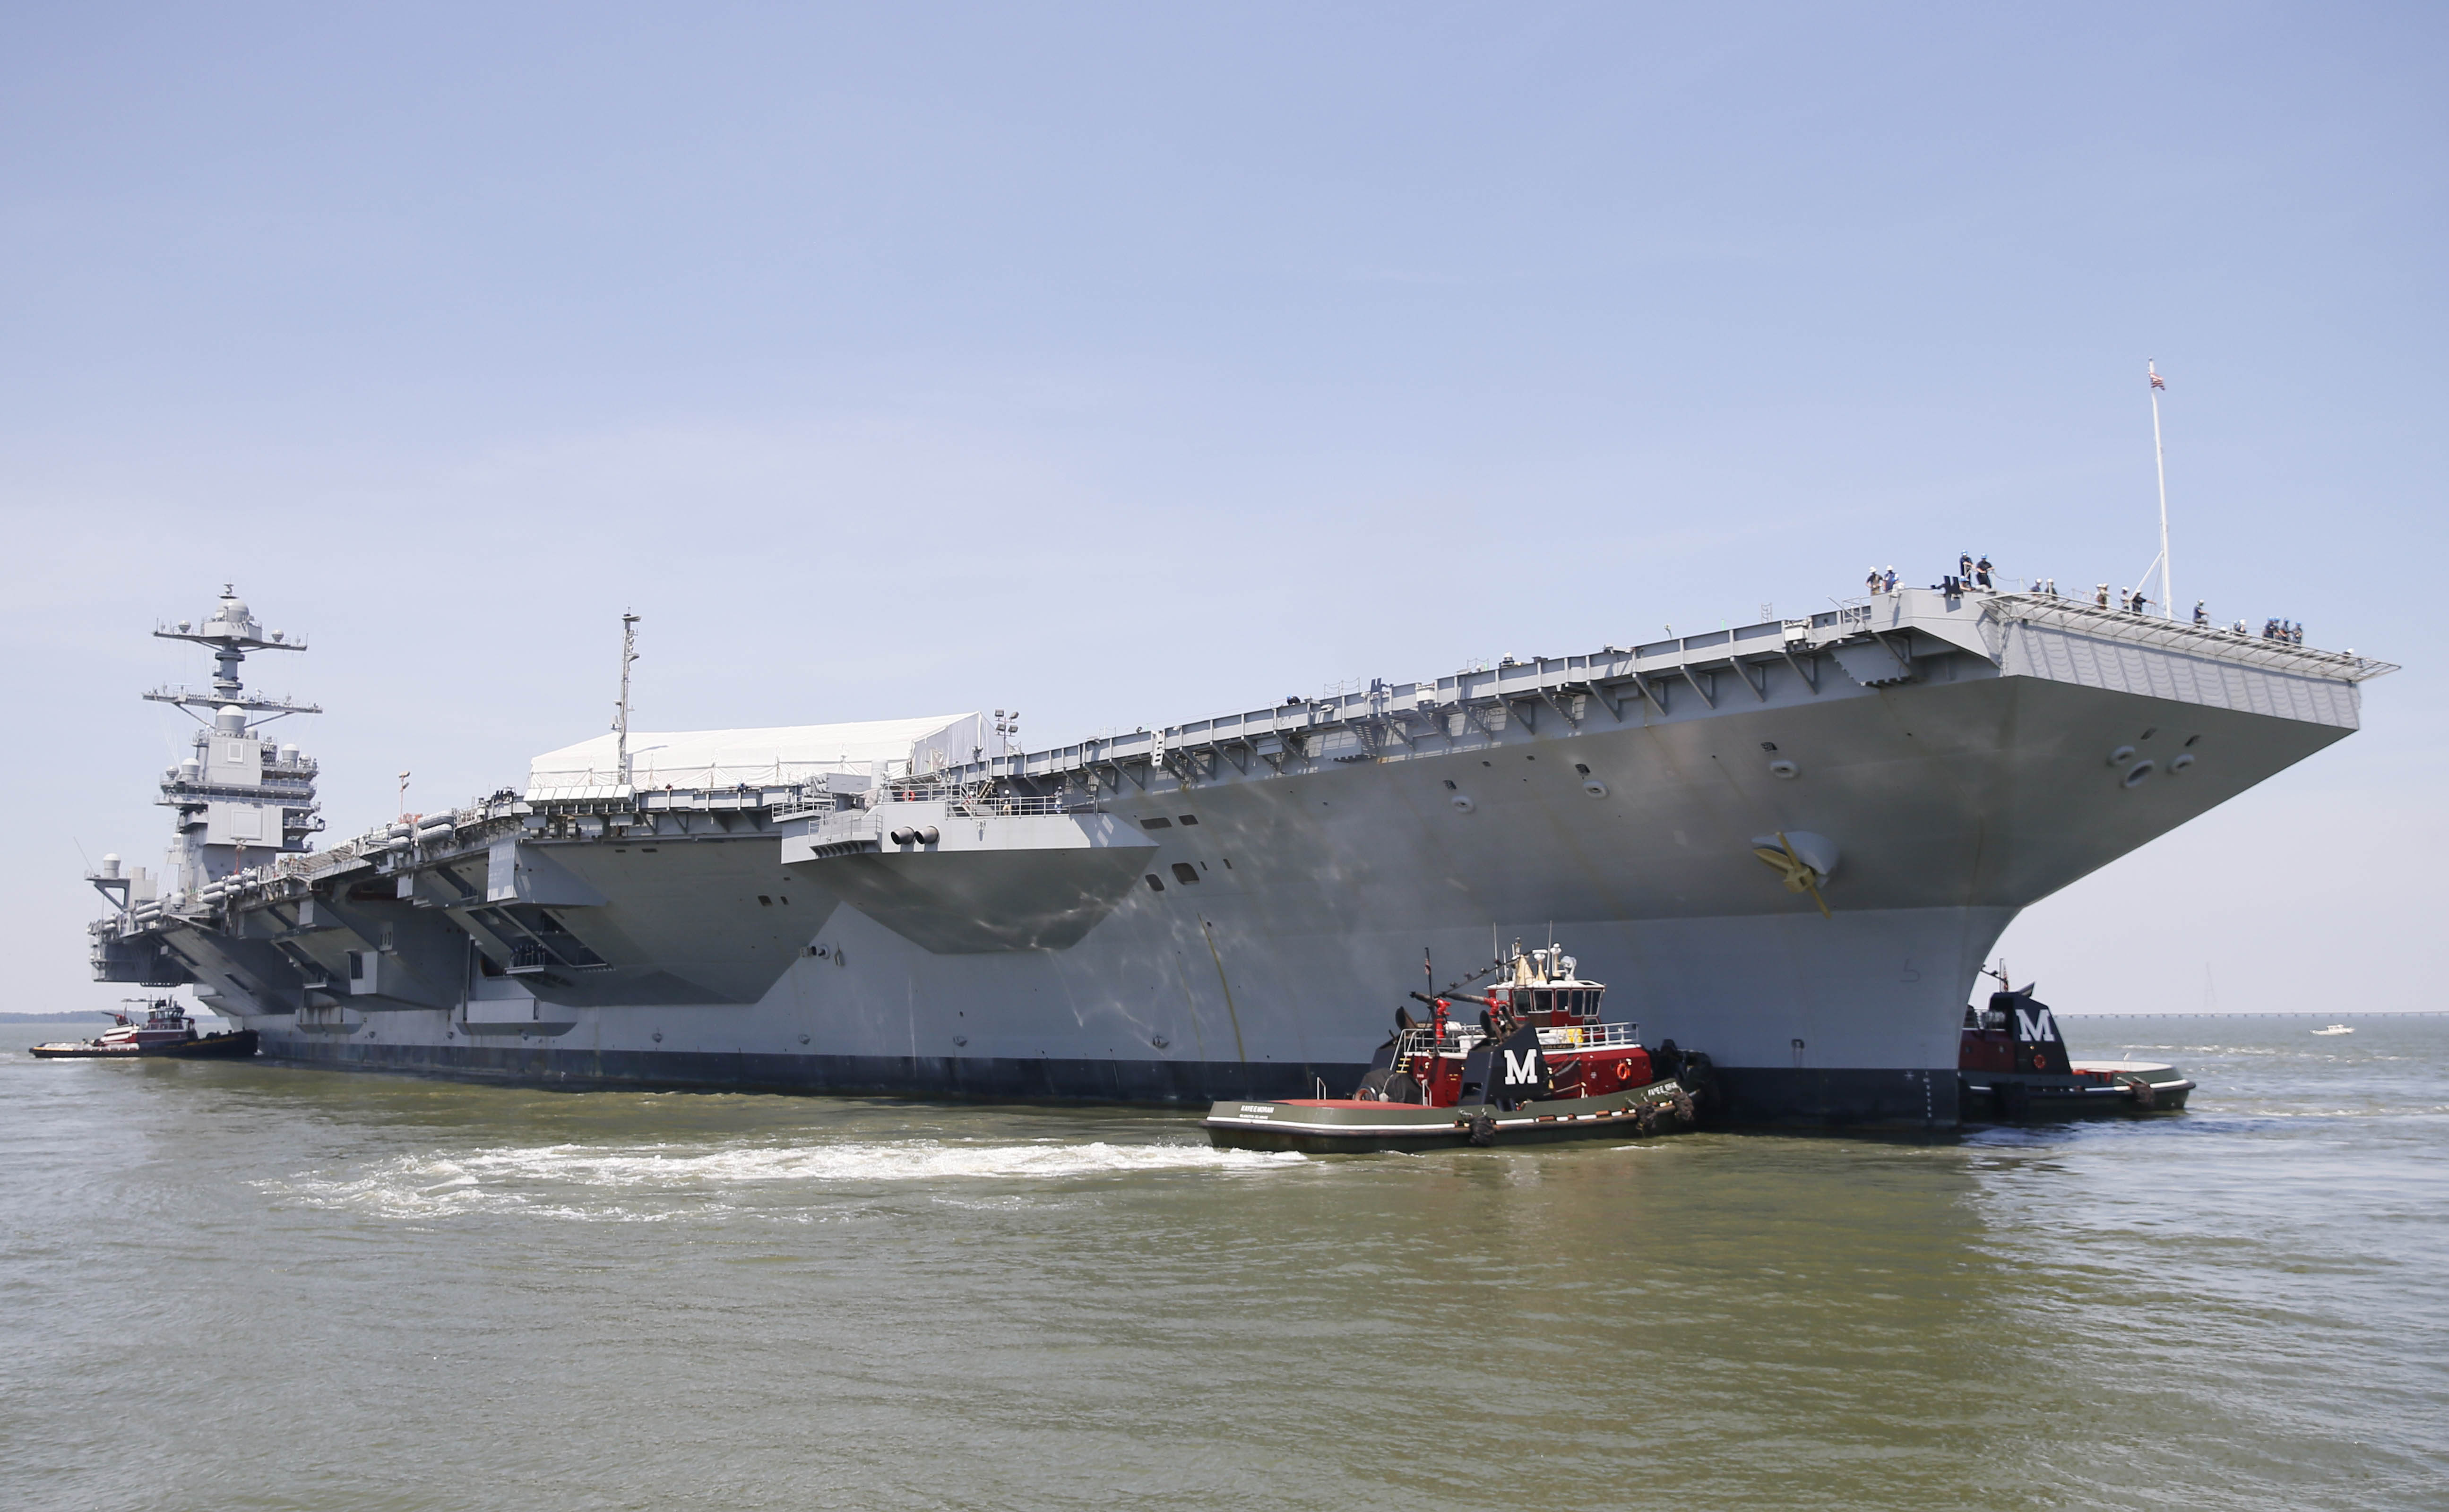 Tug boats maneuver the aircraft carrier Pre-Commissioning Unit Gerald R. Ford (CVN 78) into the James River during the ship's turn ship evolution June 11, 2016. US Navy Photo